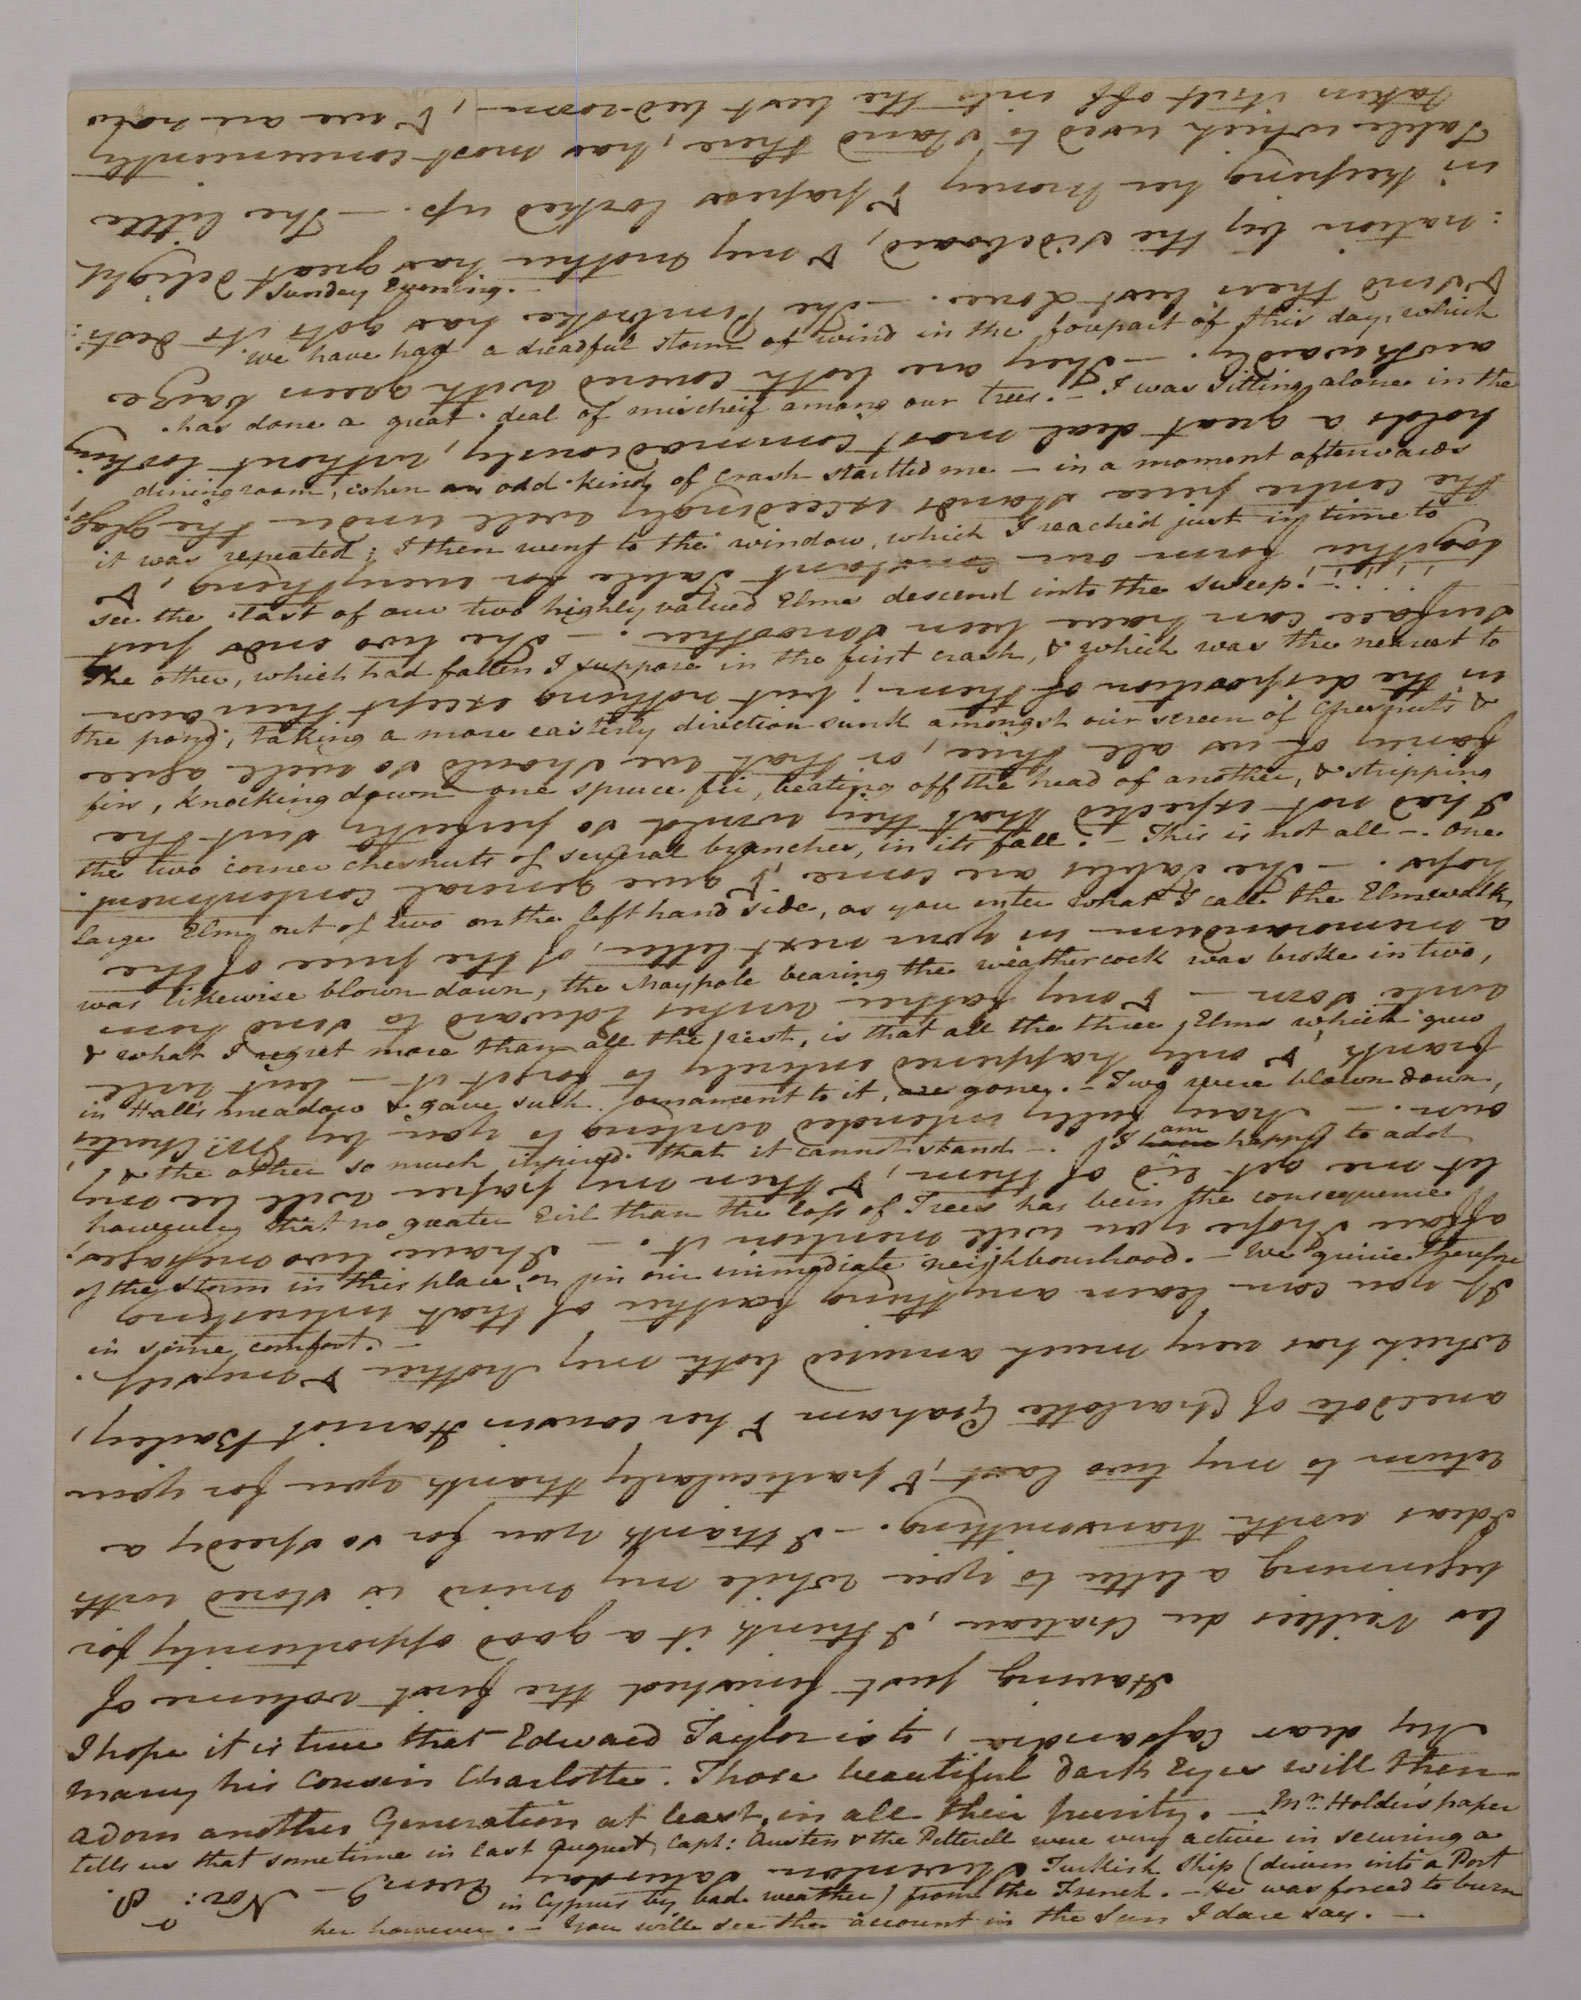 Letter from Jane Austen to her sister Cassandra, 1800 [folio: 0]